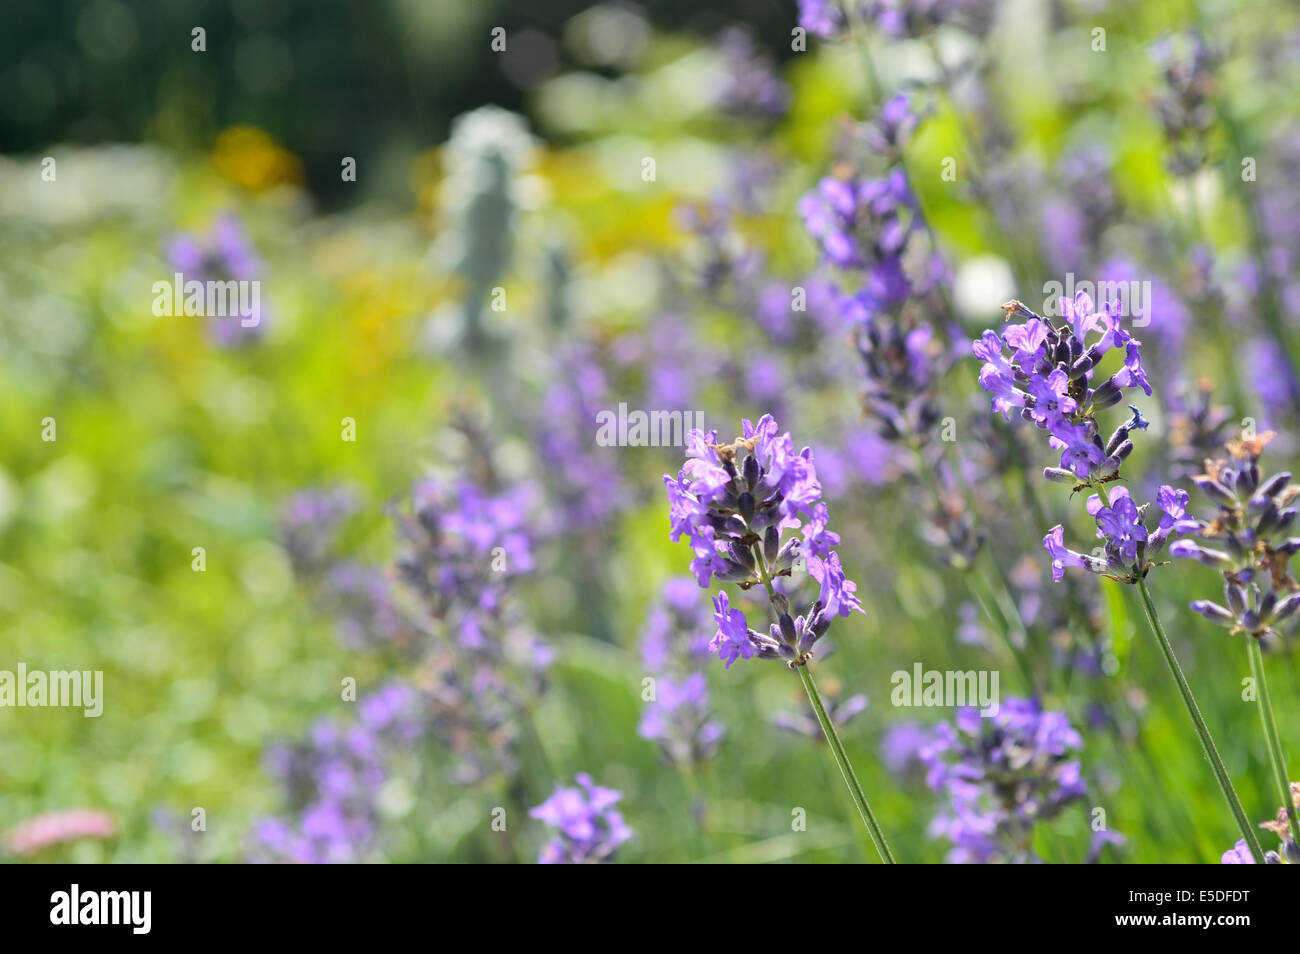 Close-up of blooming lavender flower in a bee friendly garden. Shallow depth of field. Stock Photo